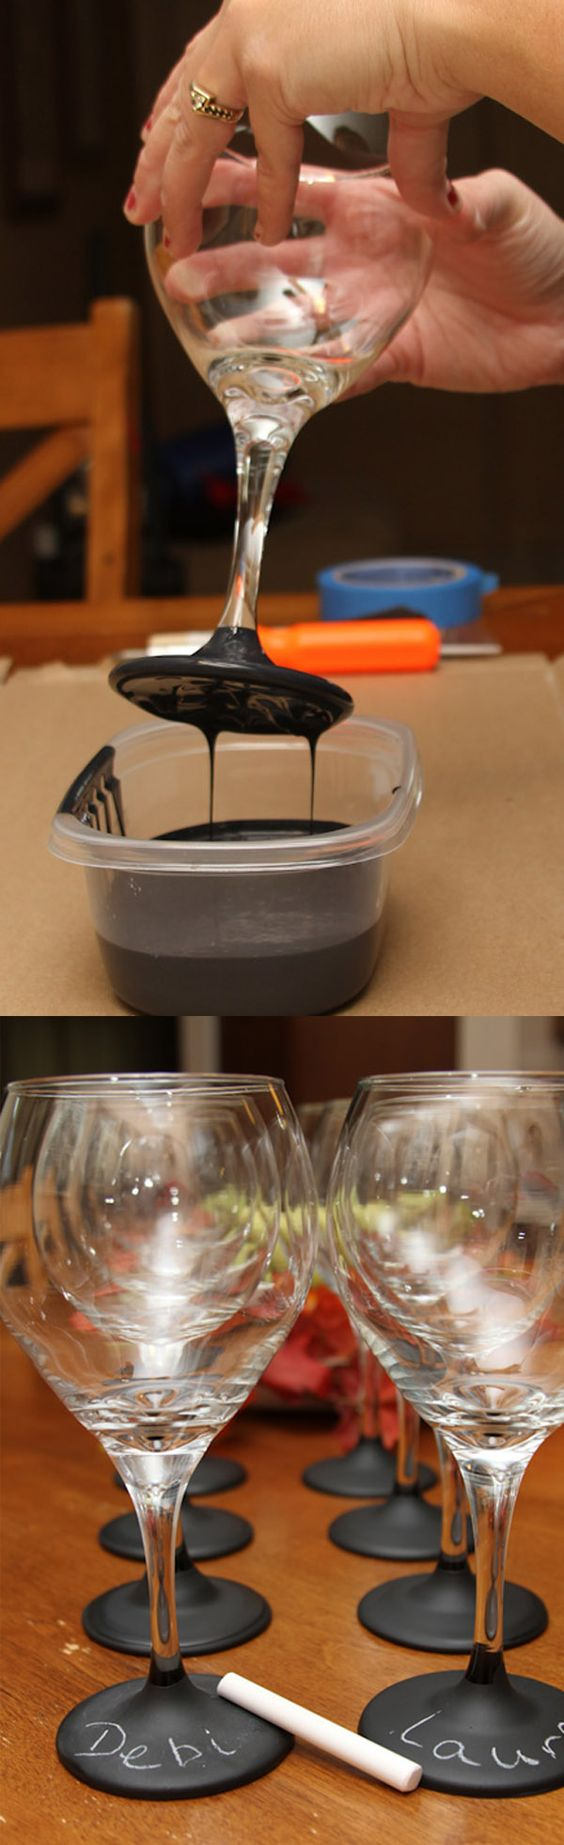 #DIY :: chalkboard paint on wine glasses for a party ( http://justshortofcrazy.com/2011/09/chalkboard-wine-glasses-tutorial.html ) // pinned by @welkerpatrick: